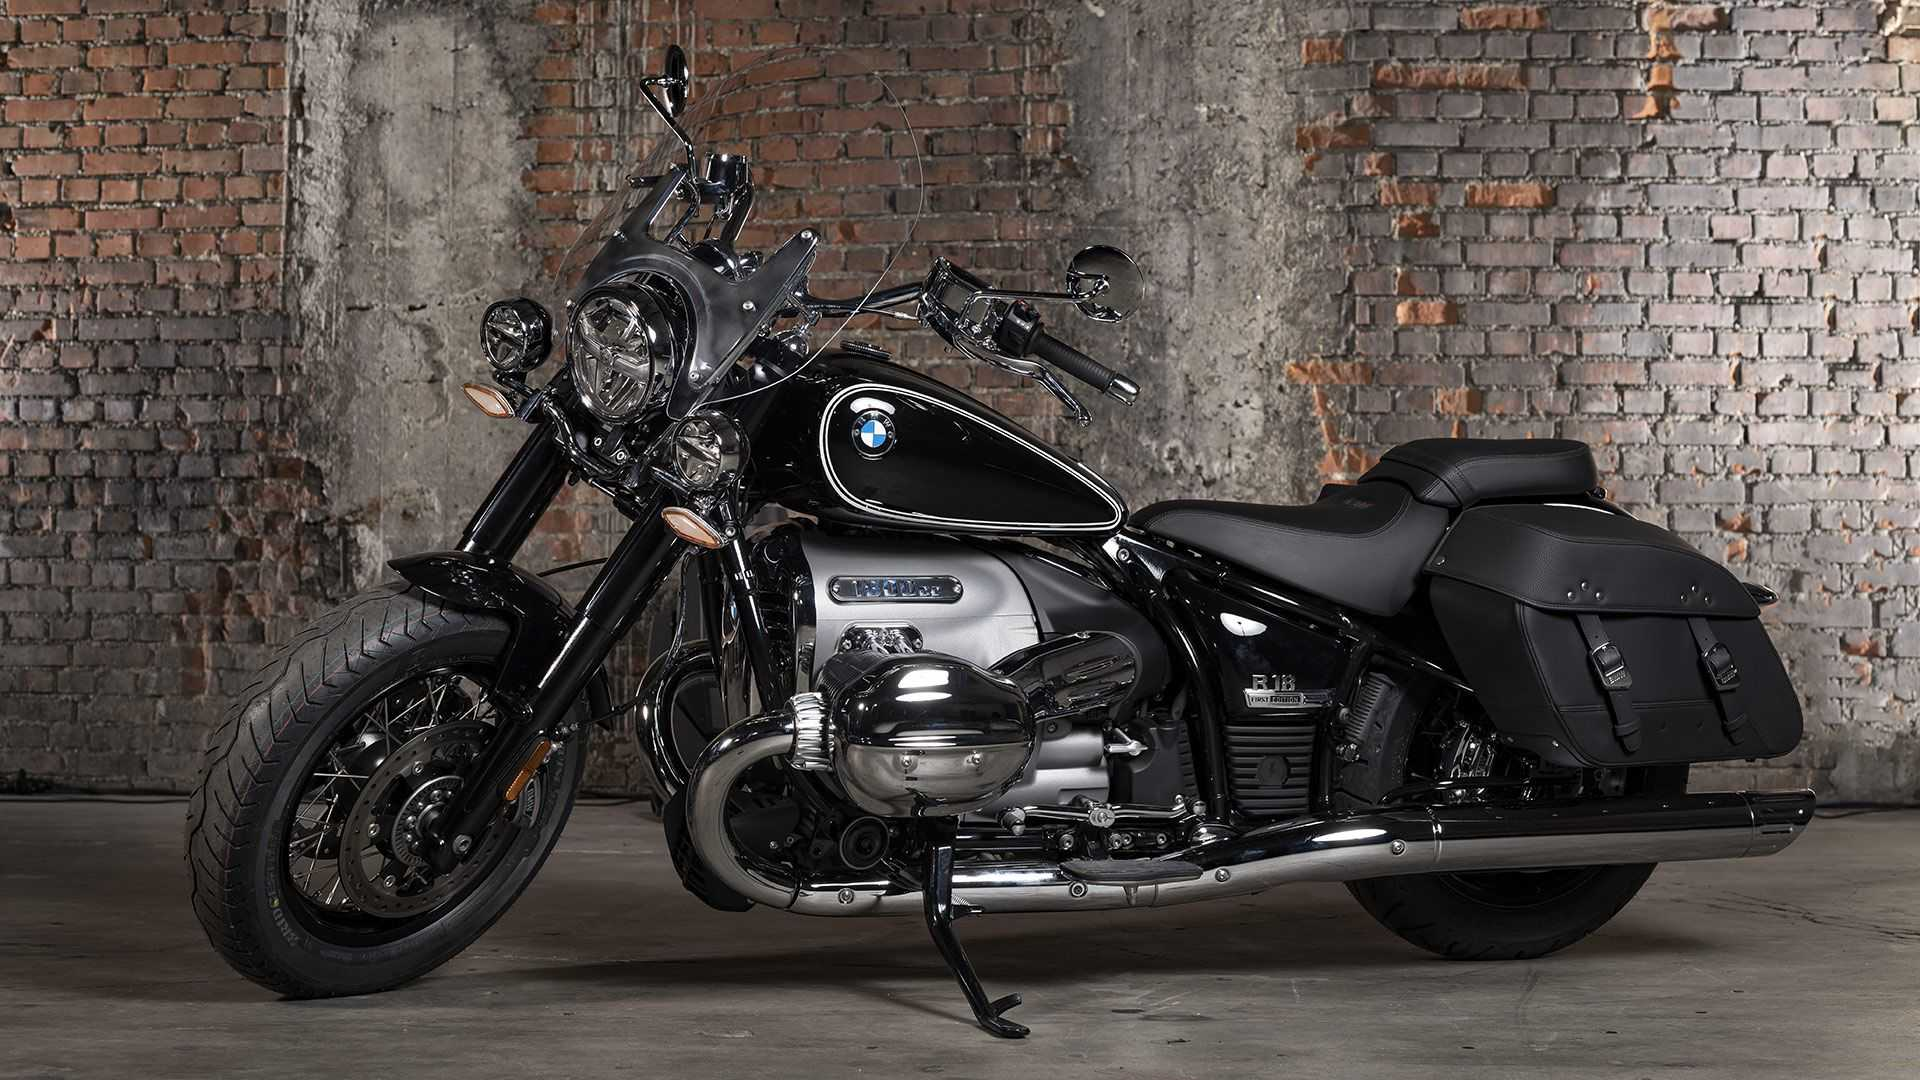 The New Bmw R 18 Classic Is A Big Bore Boxer Tourer